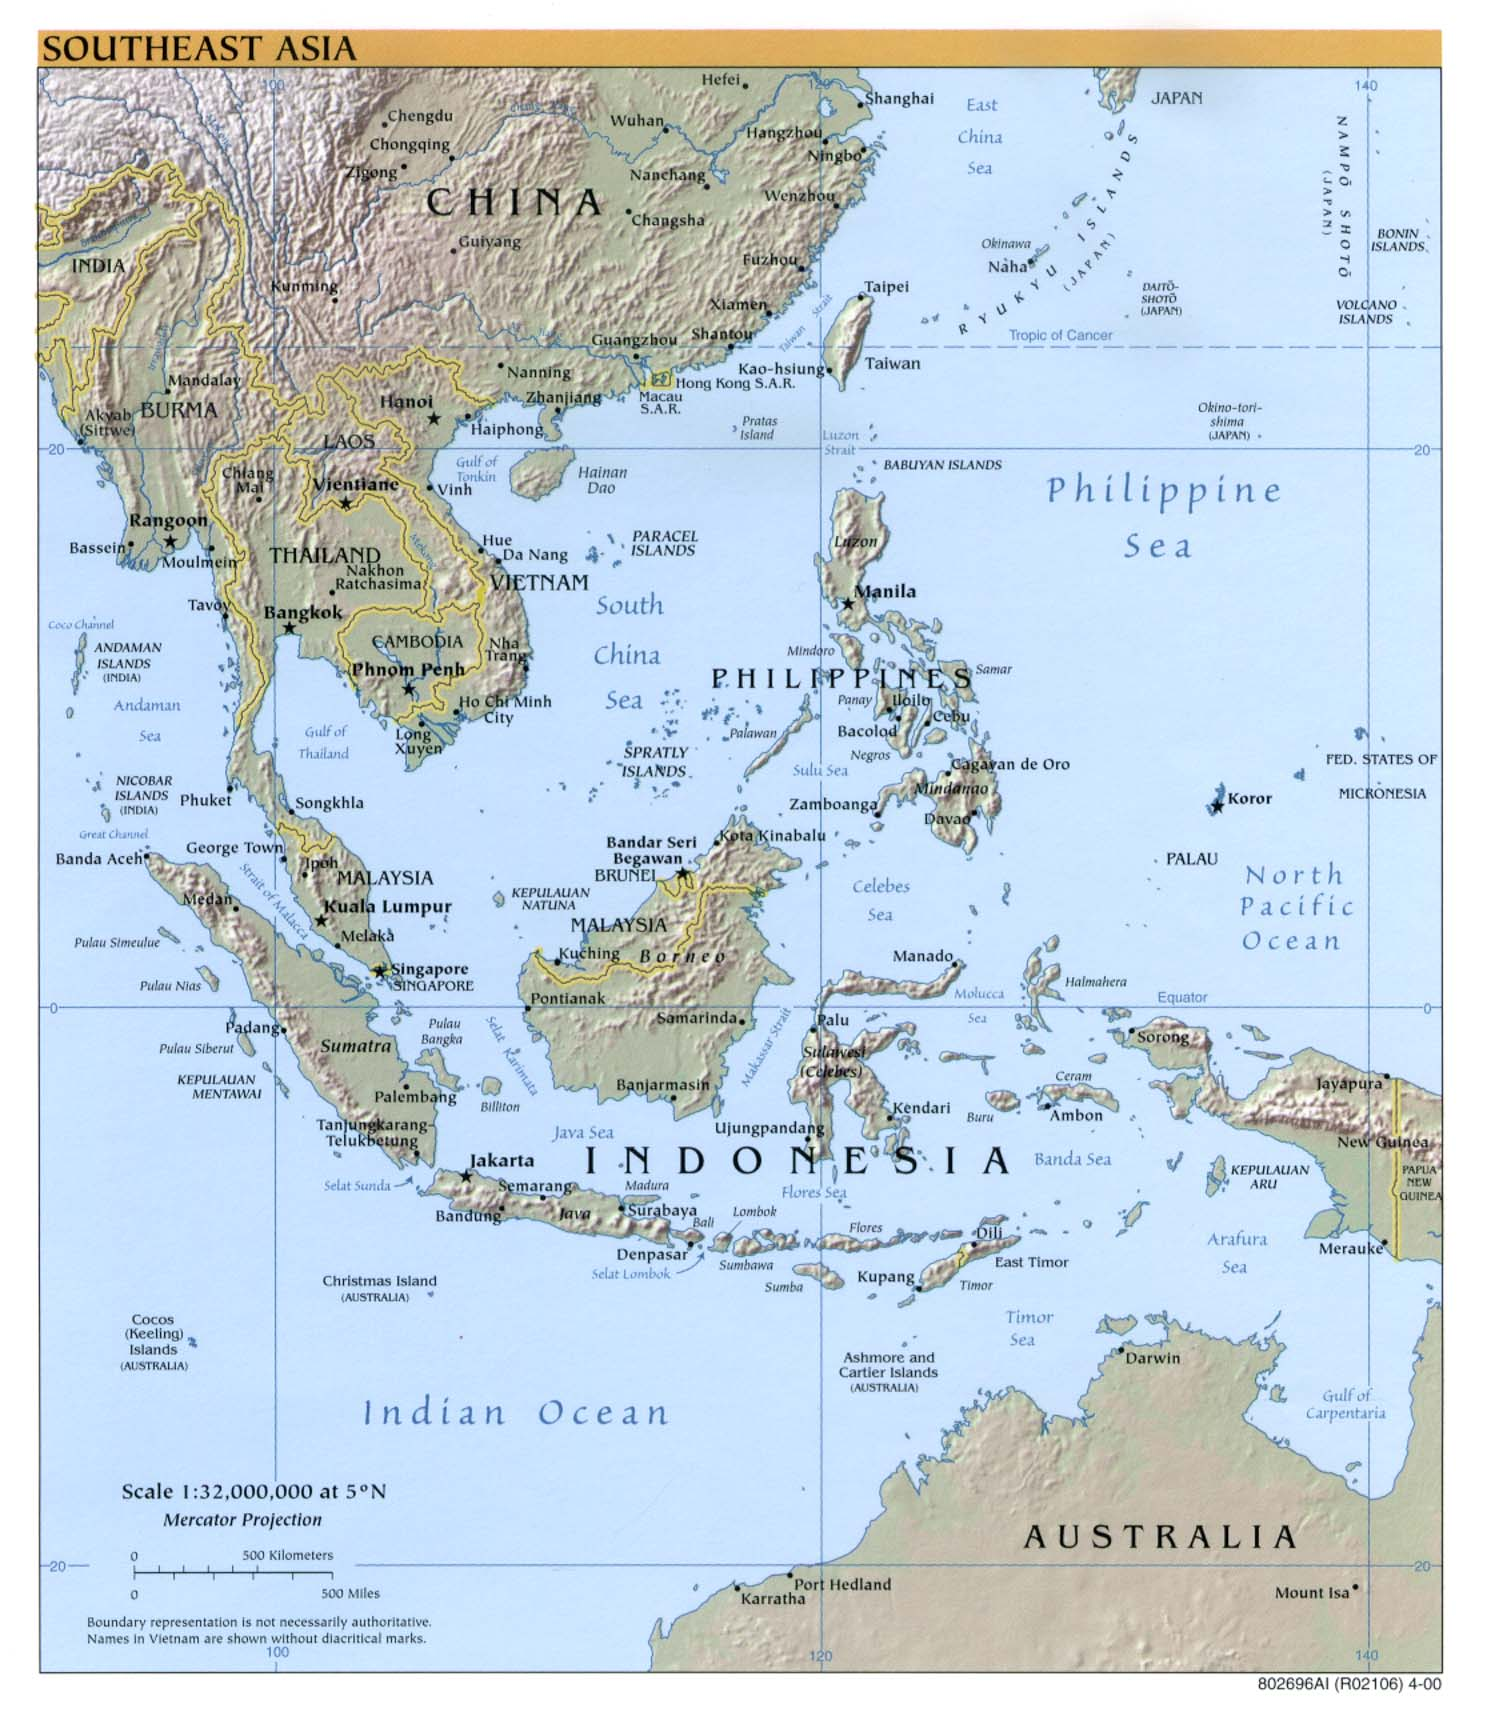 Asia Maps - Perry-Castañeda Map Collection - UT Library Online